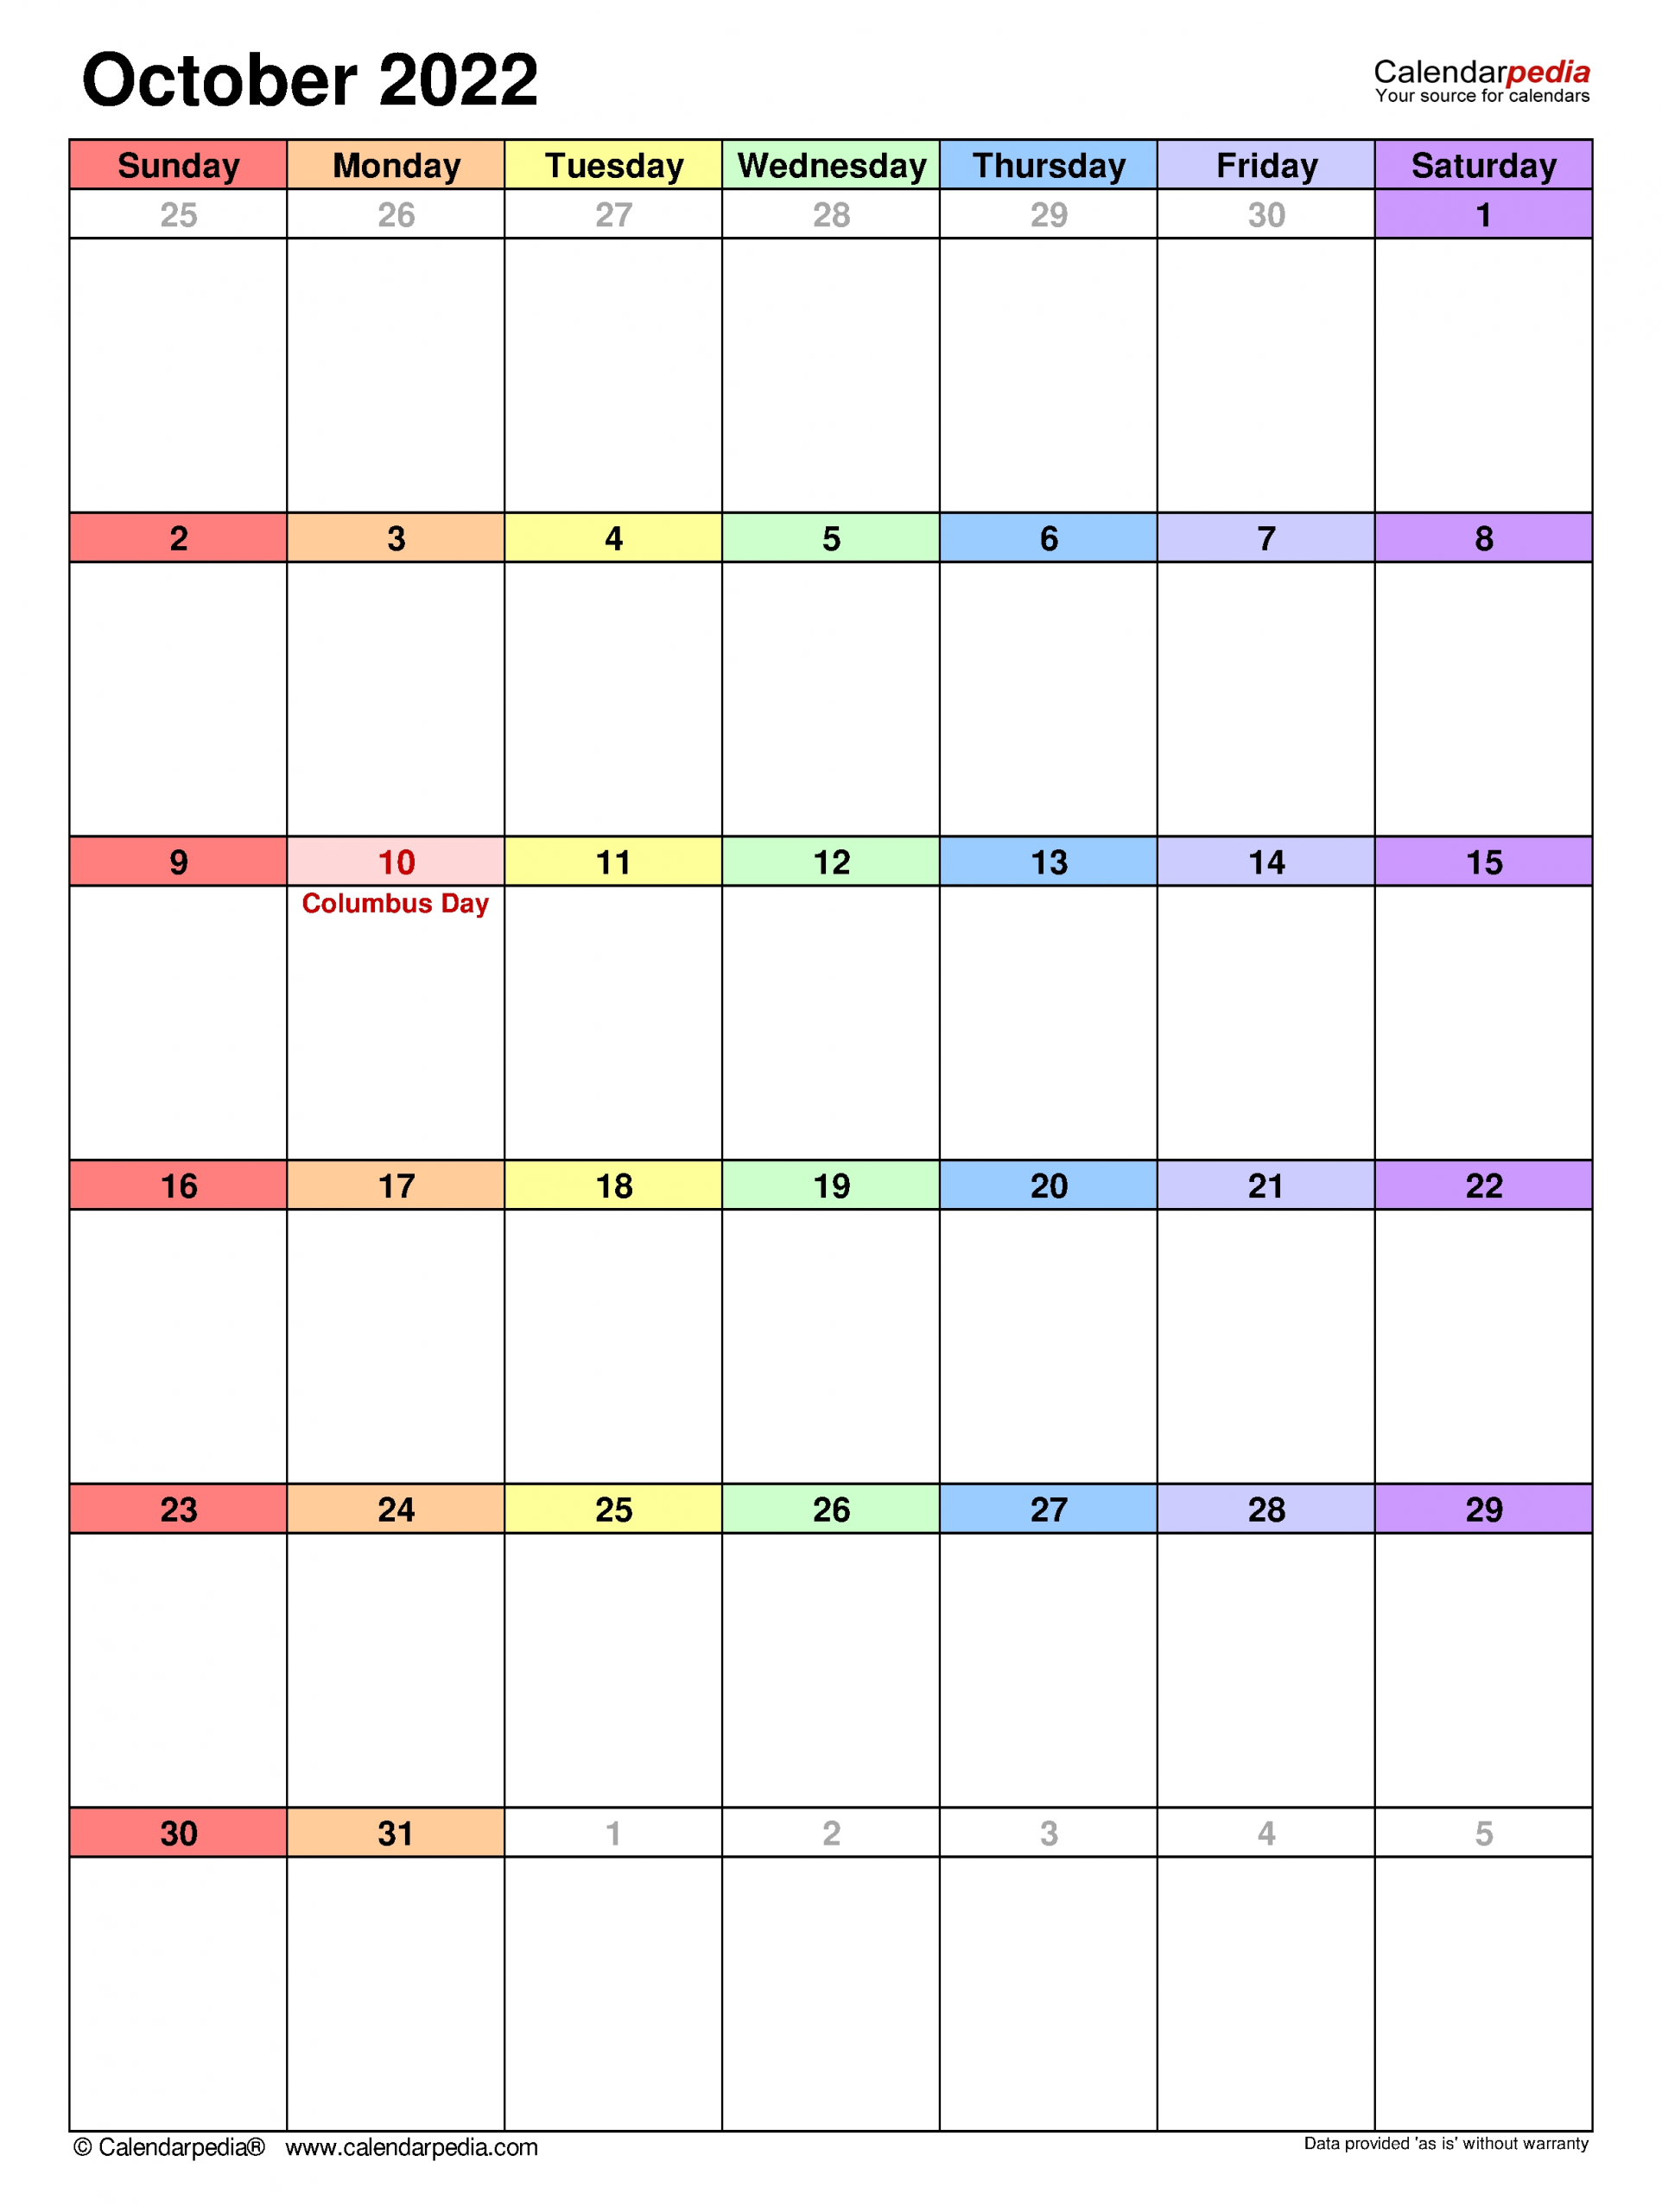 October 2022 Calendar | Templates For Word, Excel And Pdf